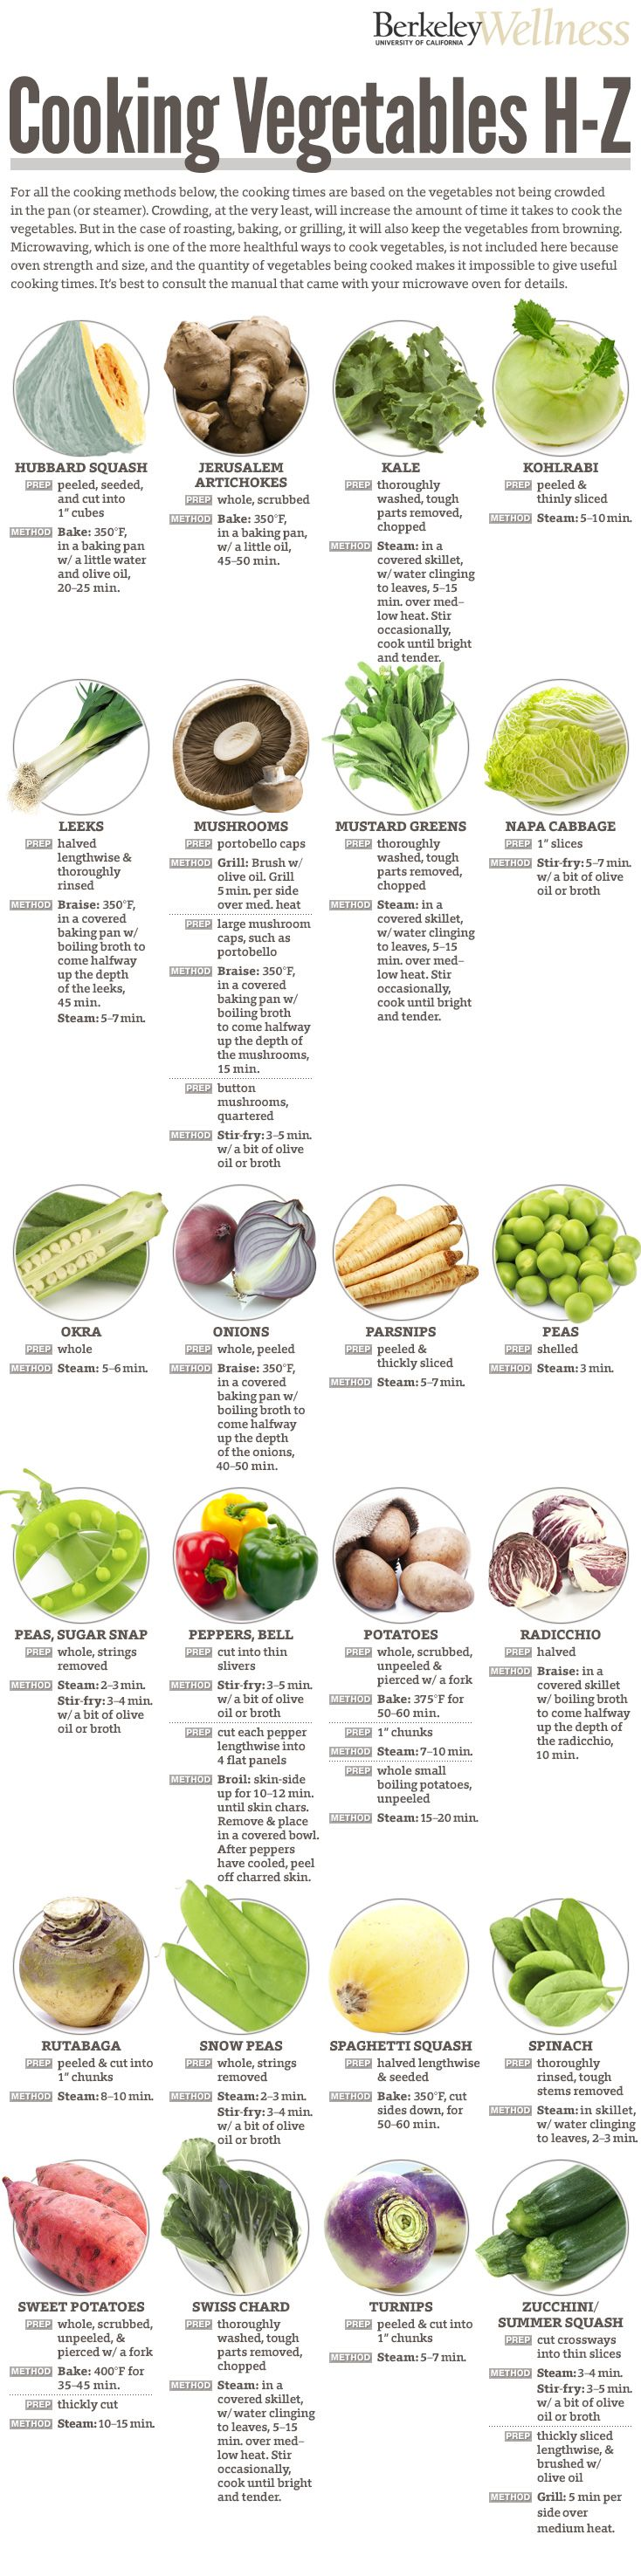 Cheat sheet on how to cook veggies part two